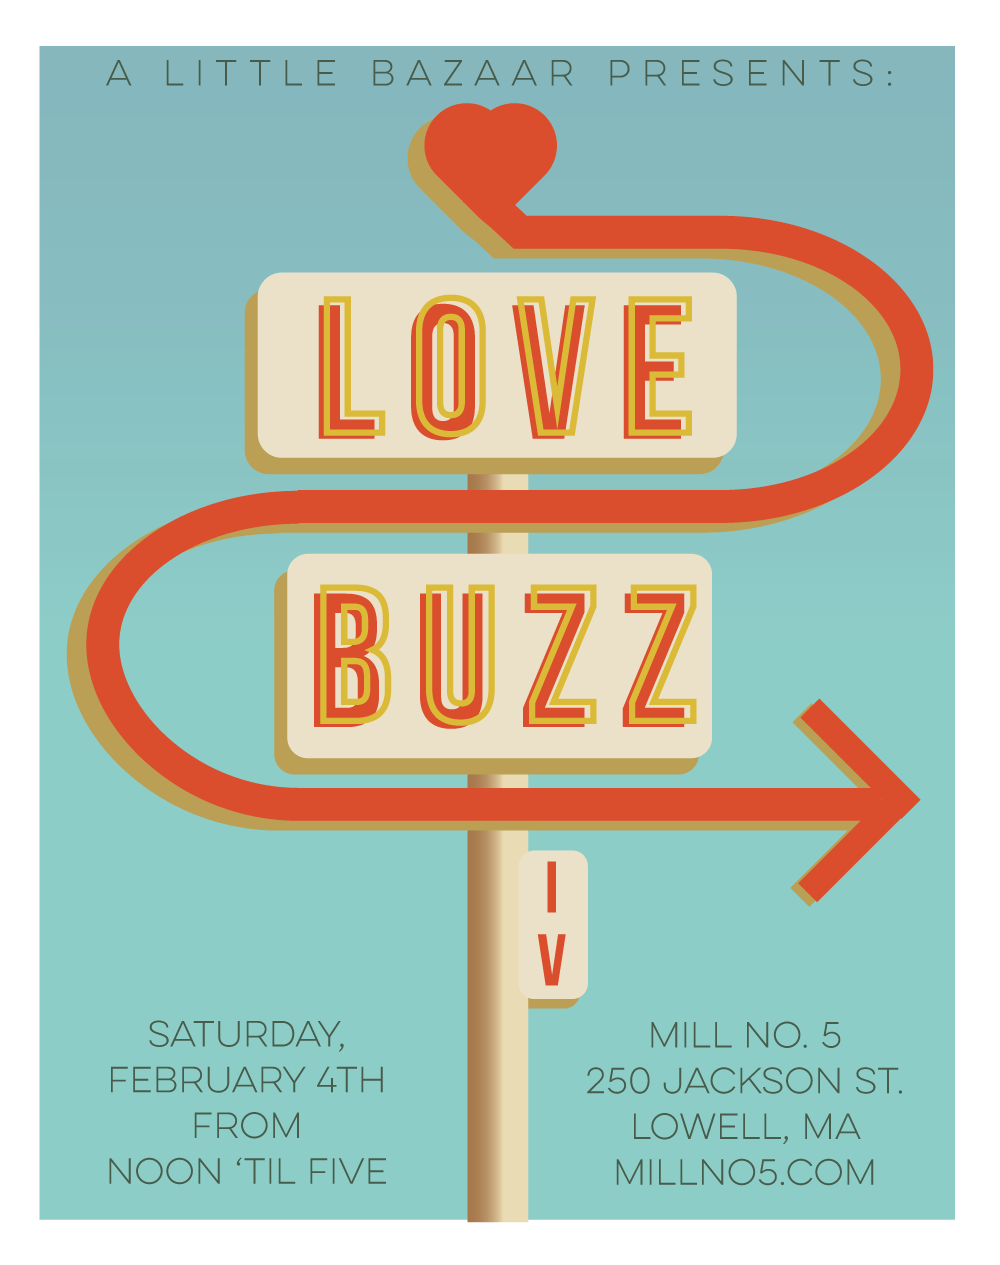 Flyer for Love Buzz IV at Mill No. 5